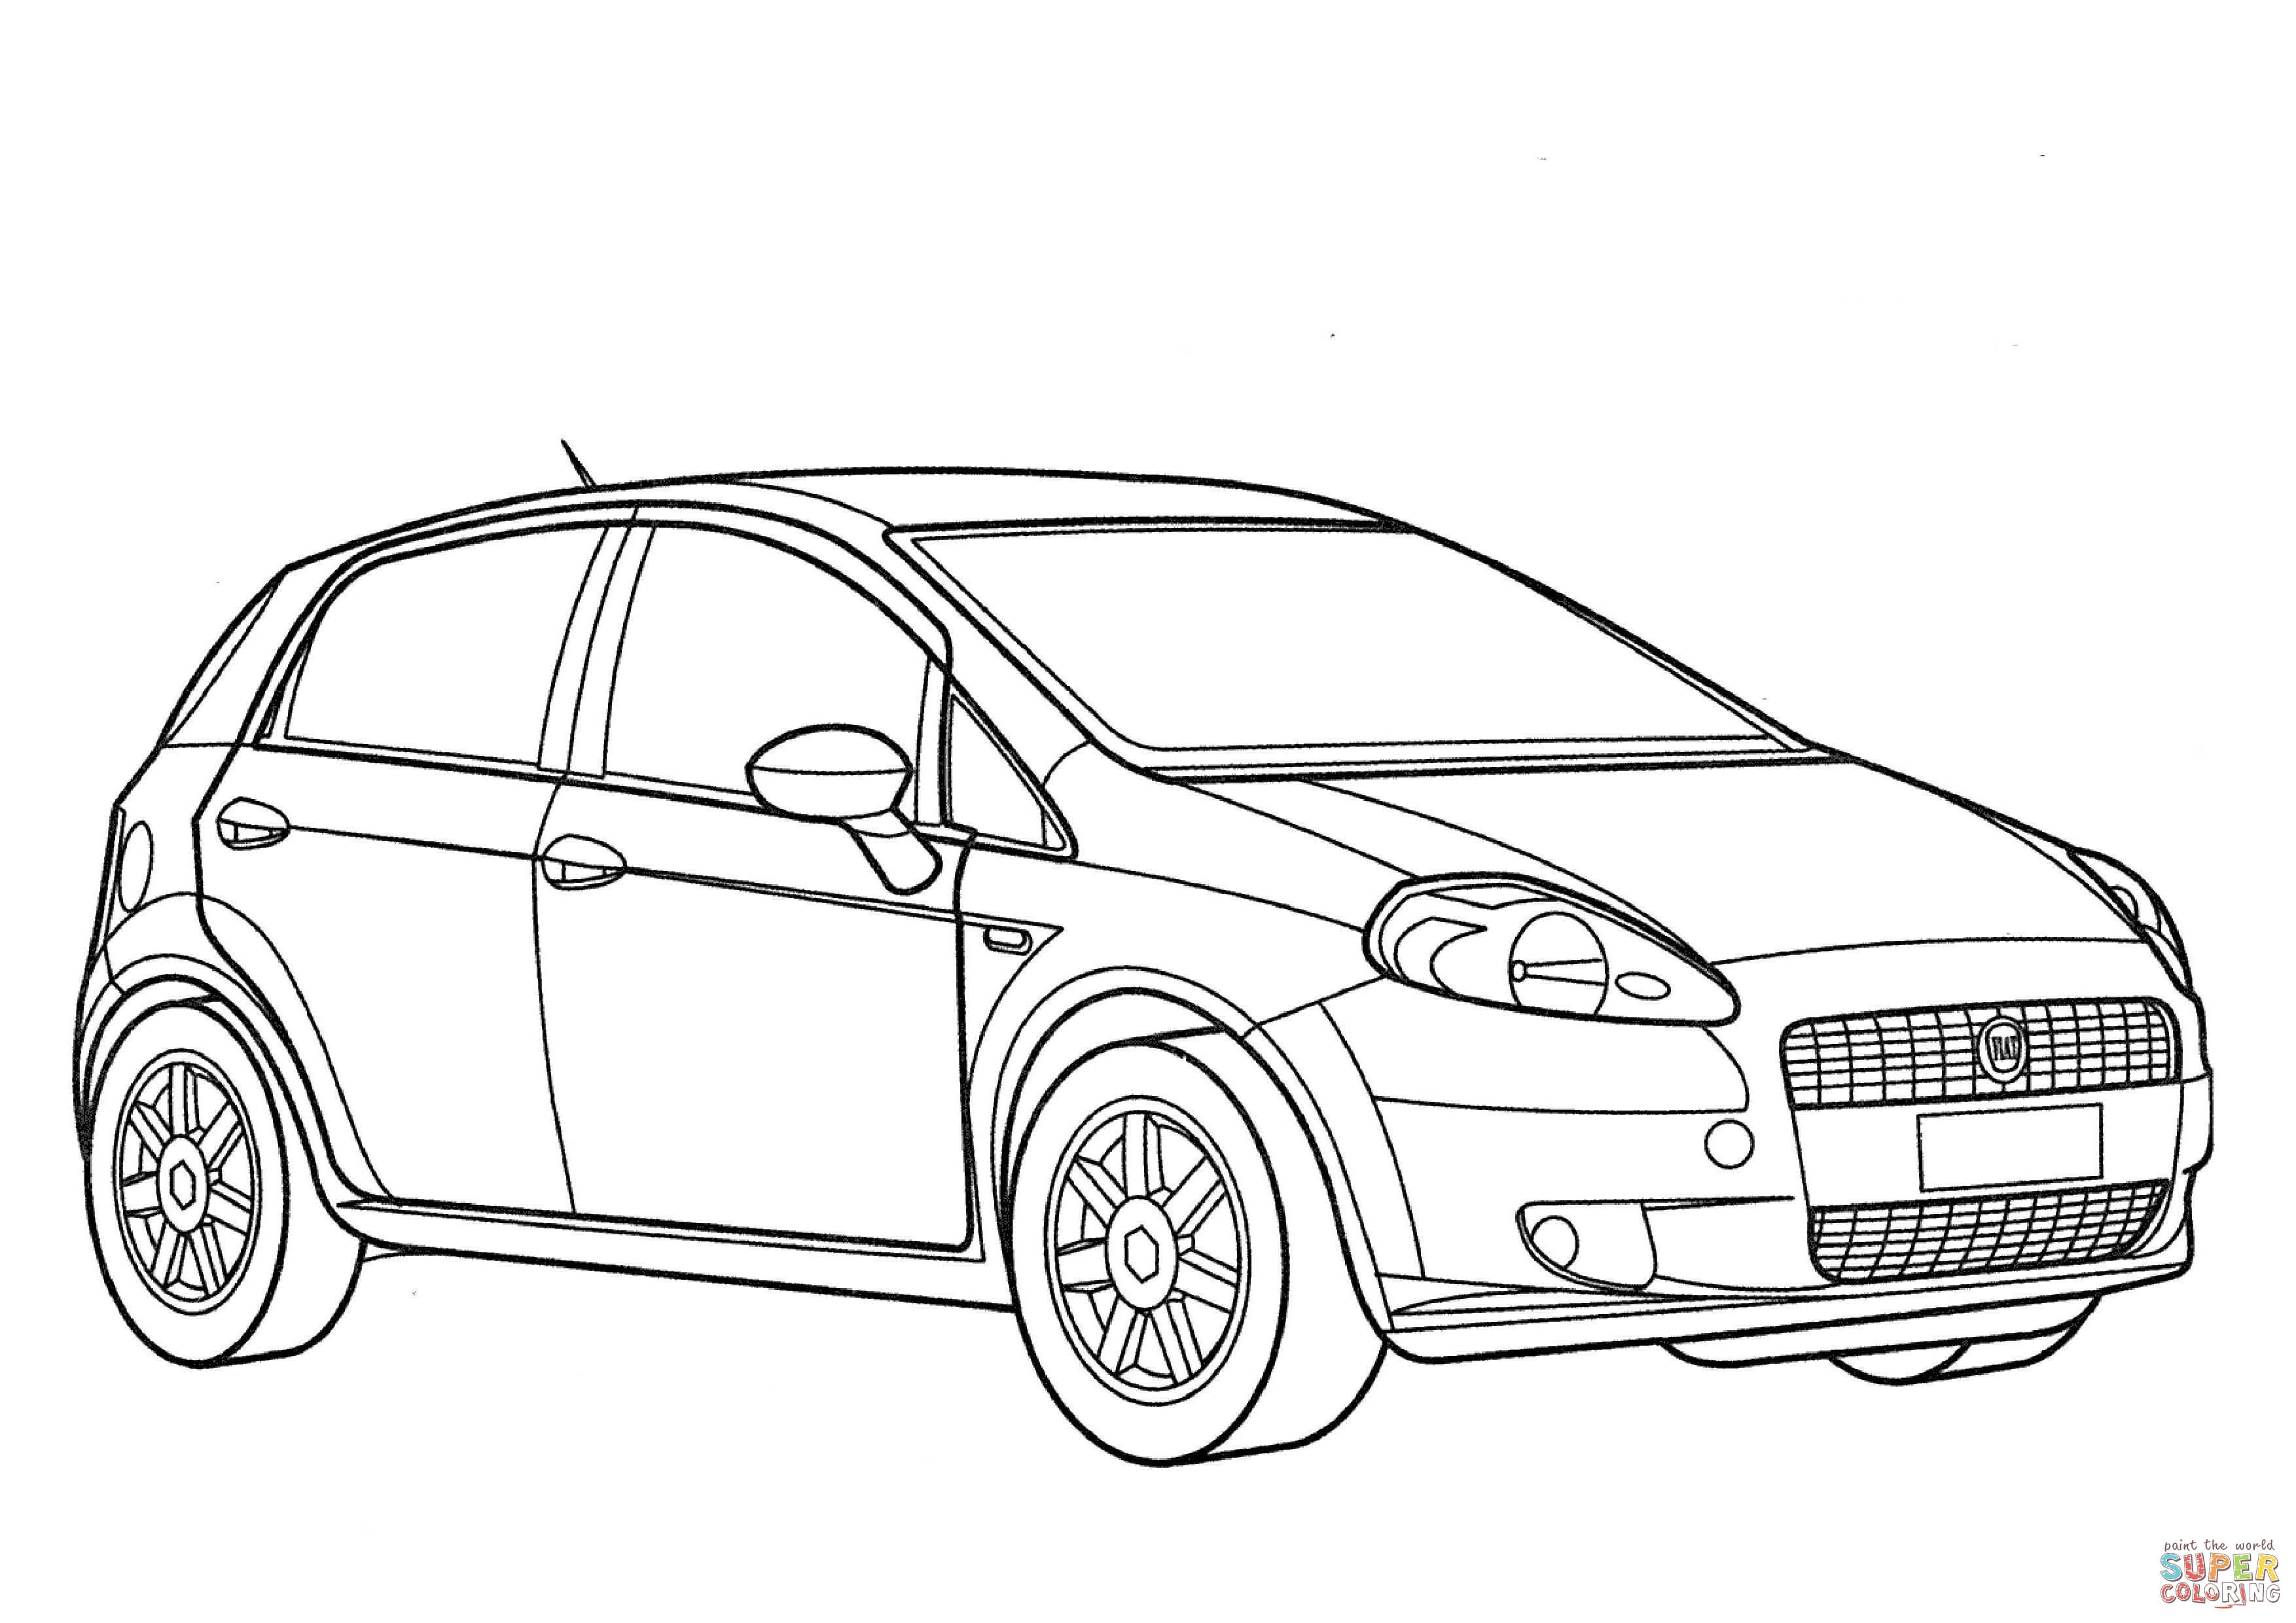 Fiat Grande Punto 3d Coloring Page Free Printable Coloring Pages